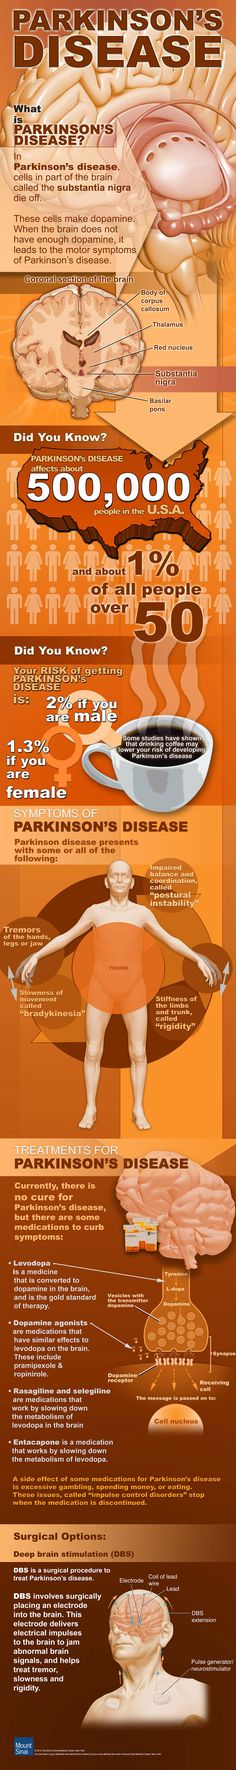 #Parkinsons Disease #Infographic